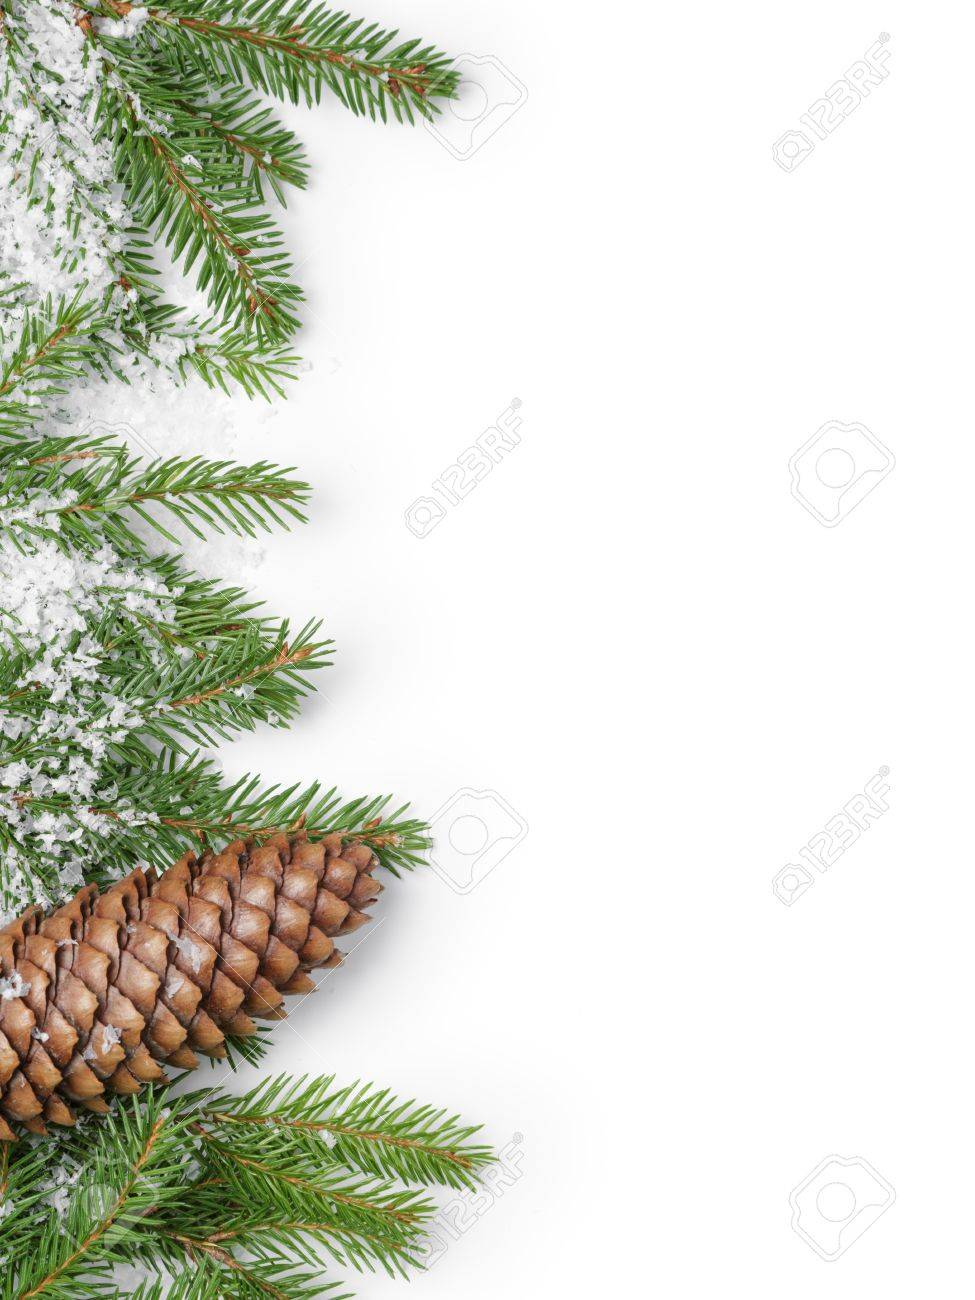 fir branches border on white background, good for christmas backdrop - 48268147